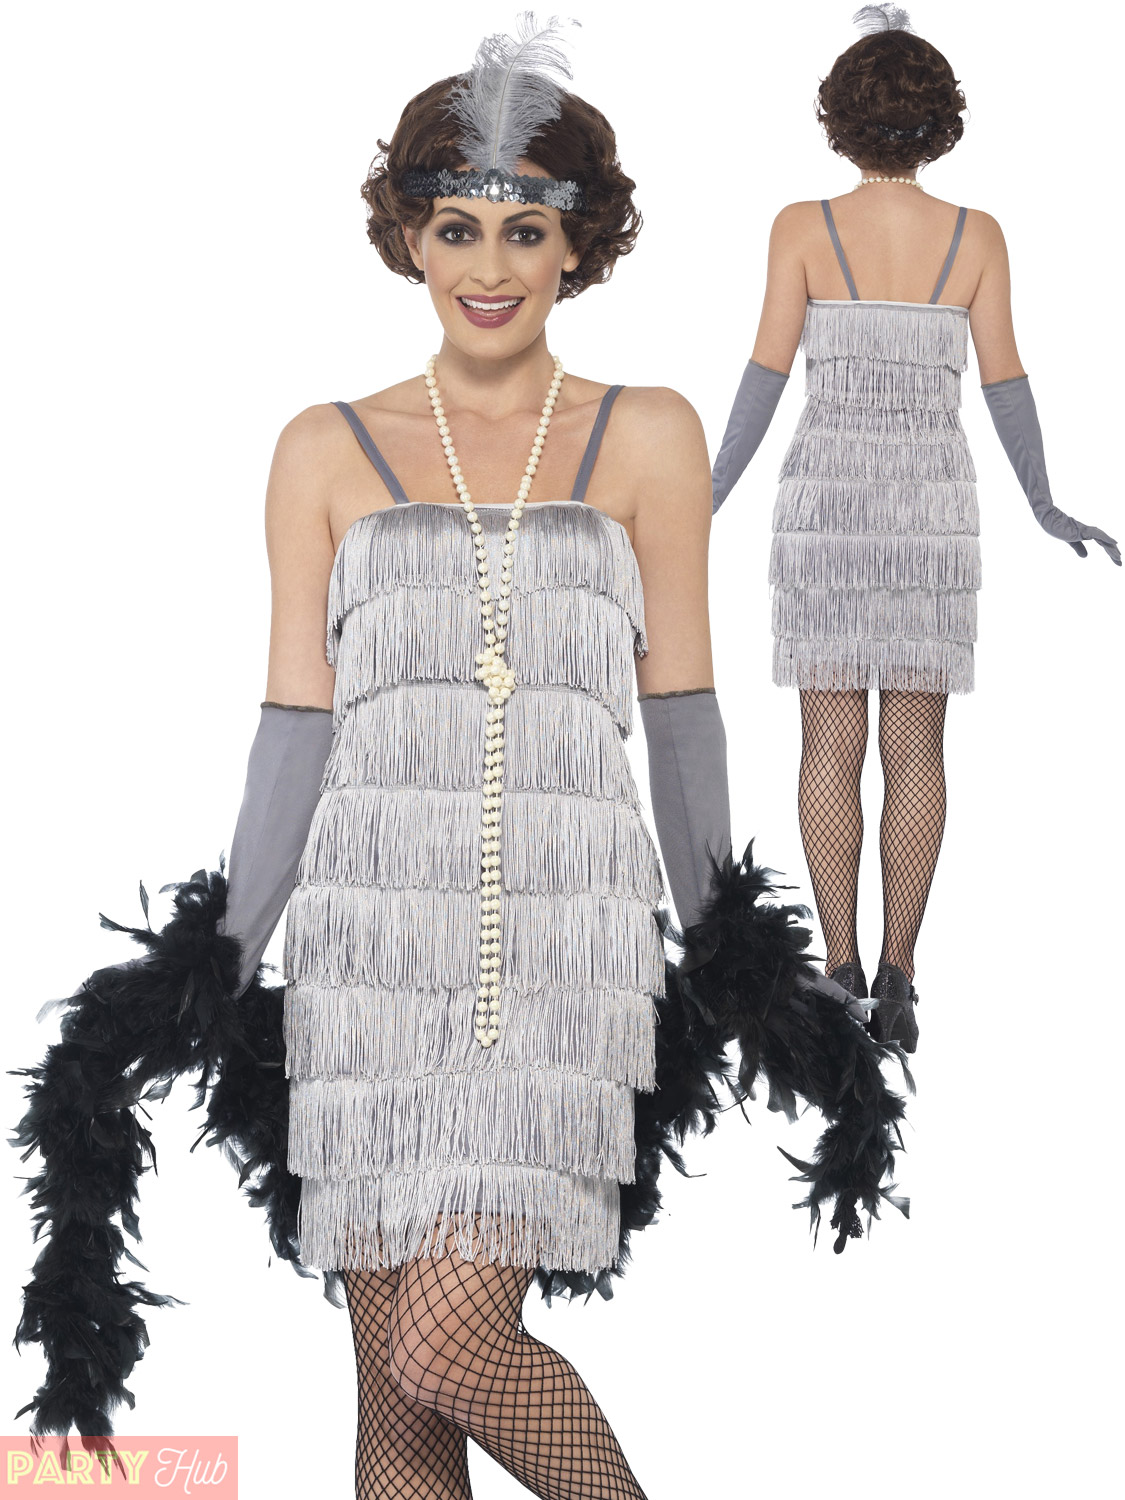 Womens 1920s flapper dress fancy dress costume adult flapper dress - Take Yourself Back To The Roaring 20s In This Ladies Sexy Flapper Costume Perfect If You Are Going To A Great Gatsby Themed Party Includes A Short Dress